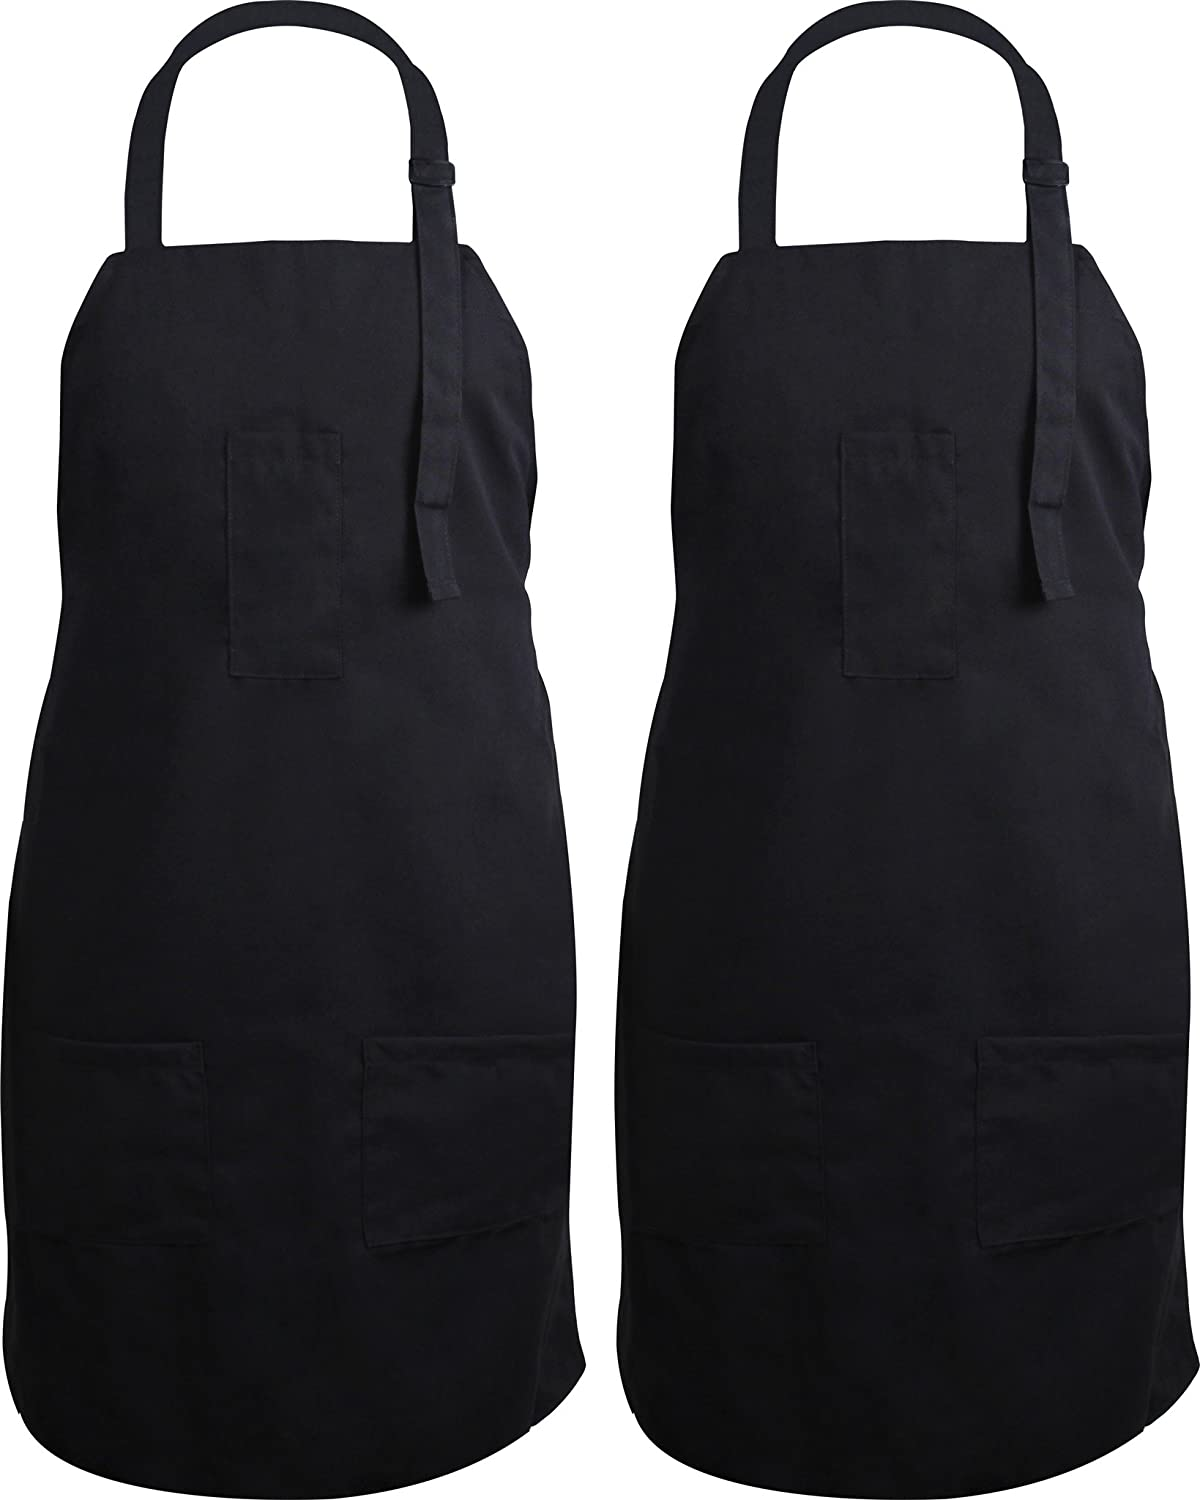 Utopia Kitchen 2 Pack Adjustable Bib Apron with 3 Pockets - Commercial Restaurant and Home Kitchen Apron - Adjustable Neck Strap - Extra Long Ties - Strong Black Utopia Home UK0287